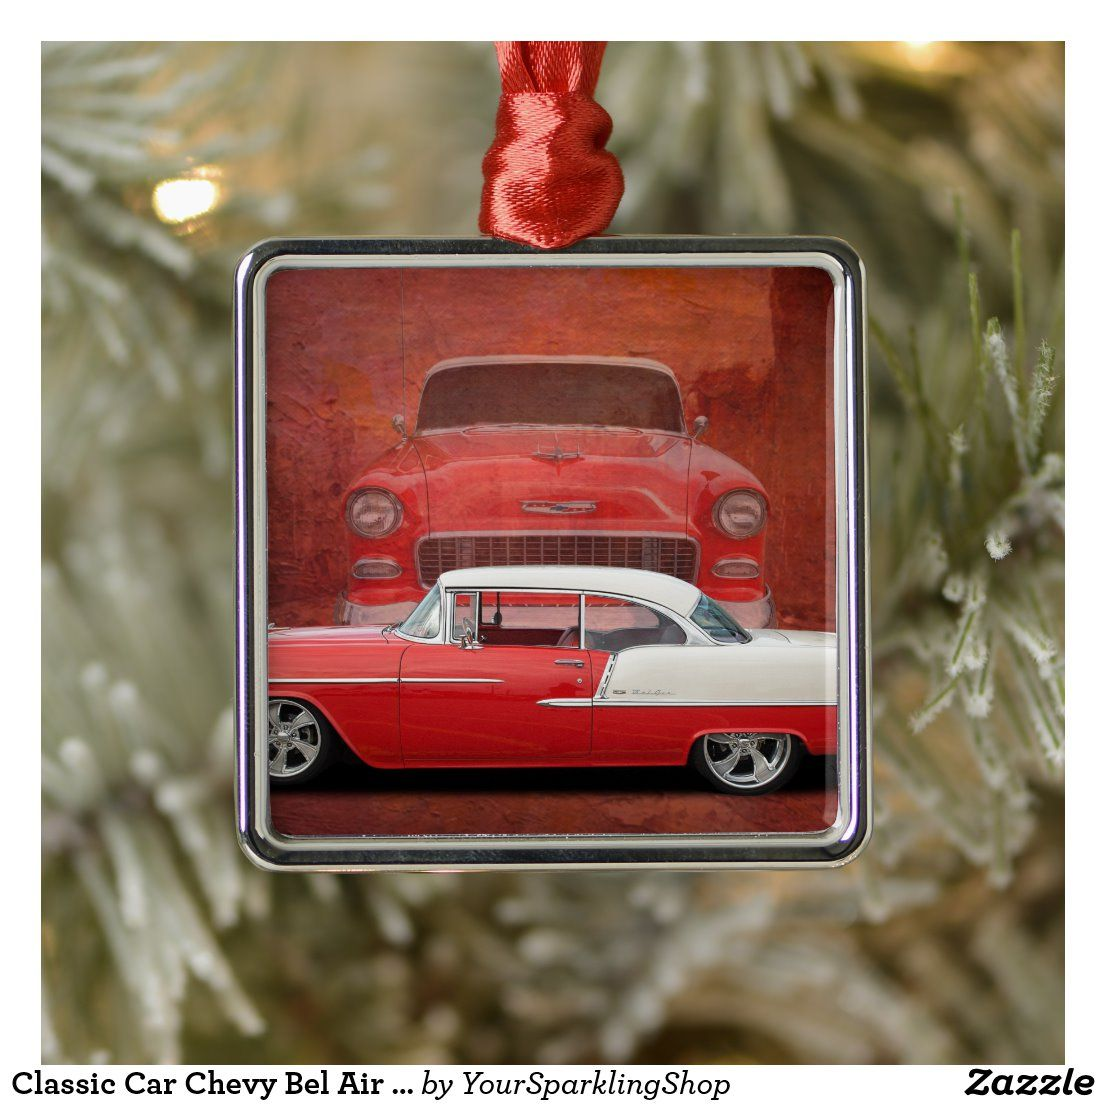 Classic Car Chevy Bel Air Red Vintage Oldtimer Ceramic Ornament | Zazzle.com